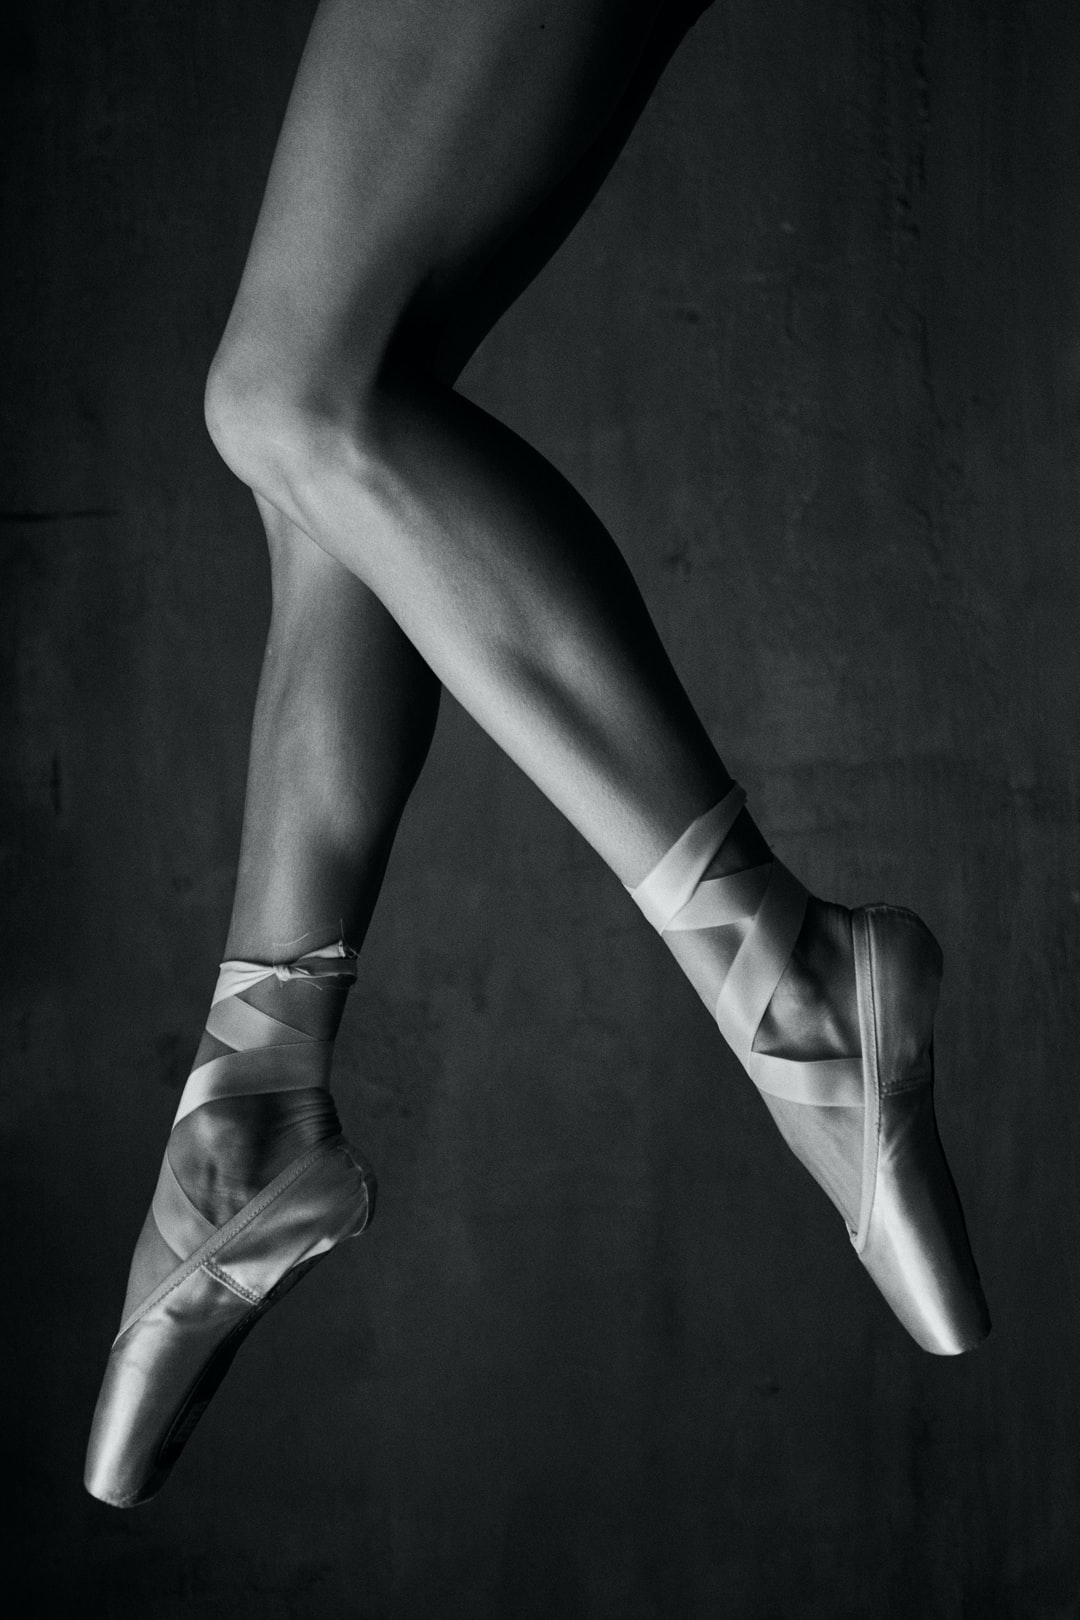 Studio photoshoot with pointe shoes and big window. Photographied by Anton Titov